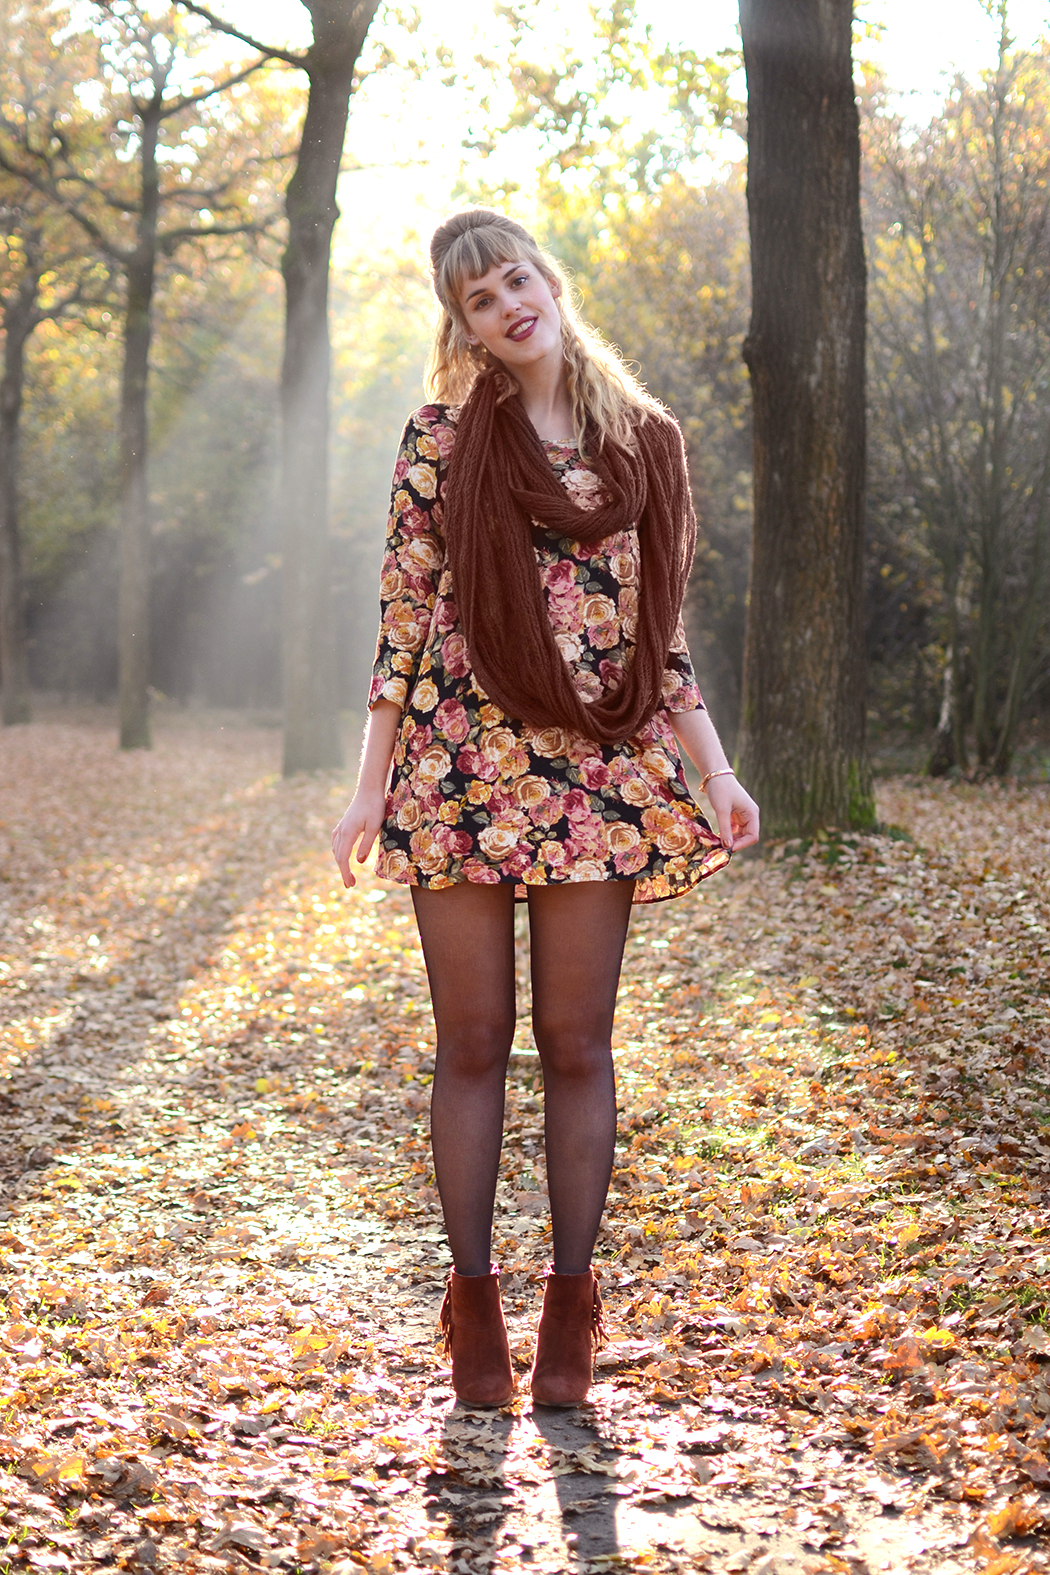 Retromantisch retro romantic fashion blog floral dress Forever 21 scarf Invito shoes fringe boots laarsjes vintage watch